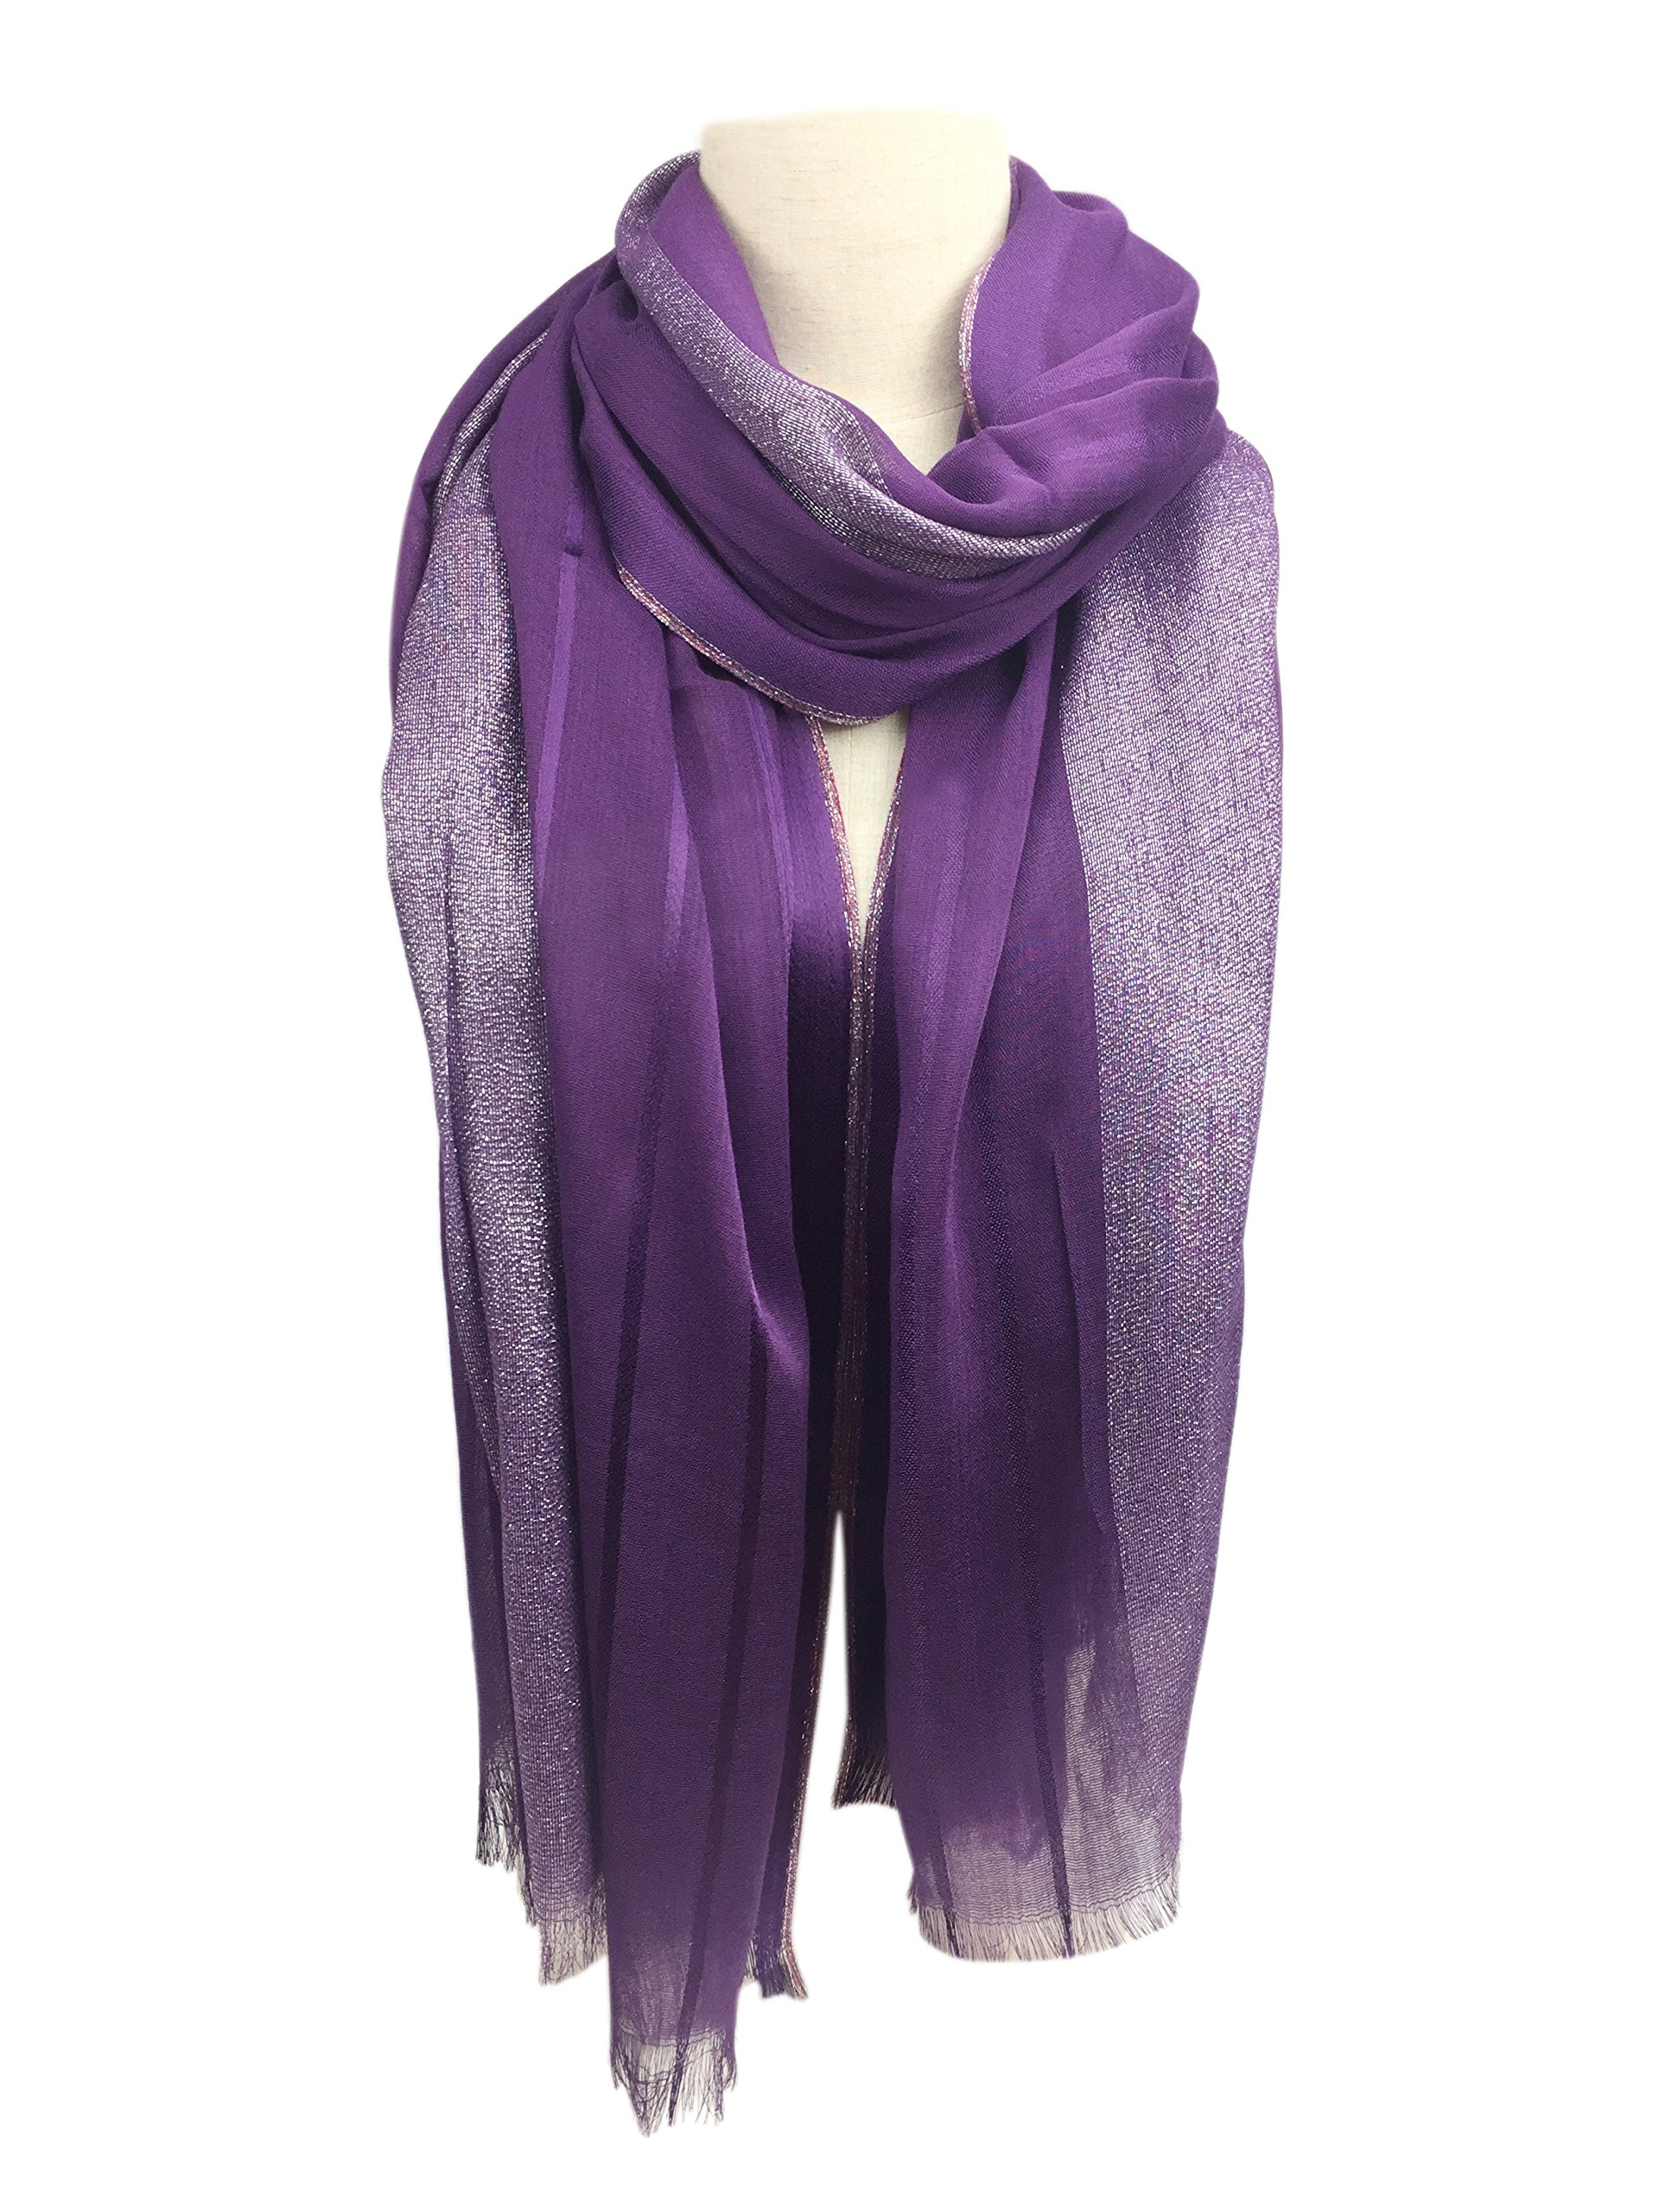 YOUR SMILE Women's Lightweight Glitter Color mixture Print Shawl Scarf For Spring Season (Purple) by YOUR SMILE (Image #5)